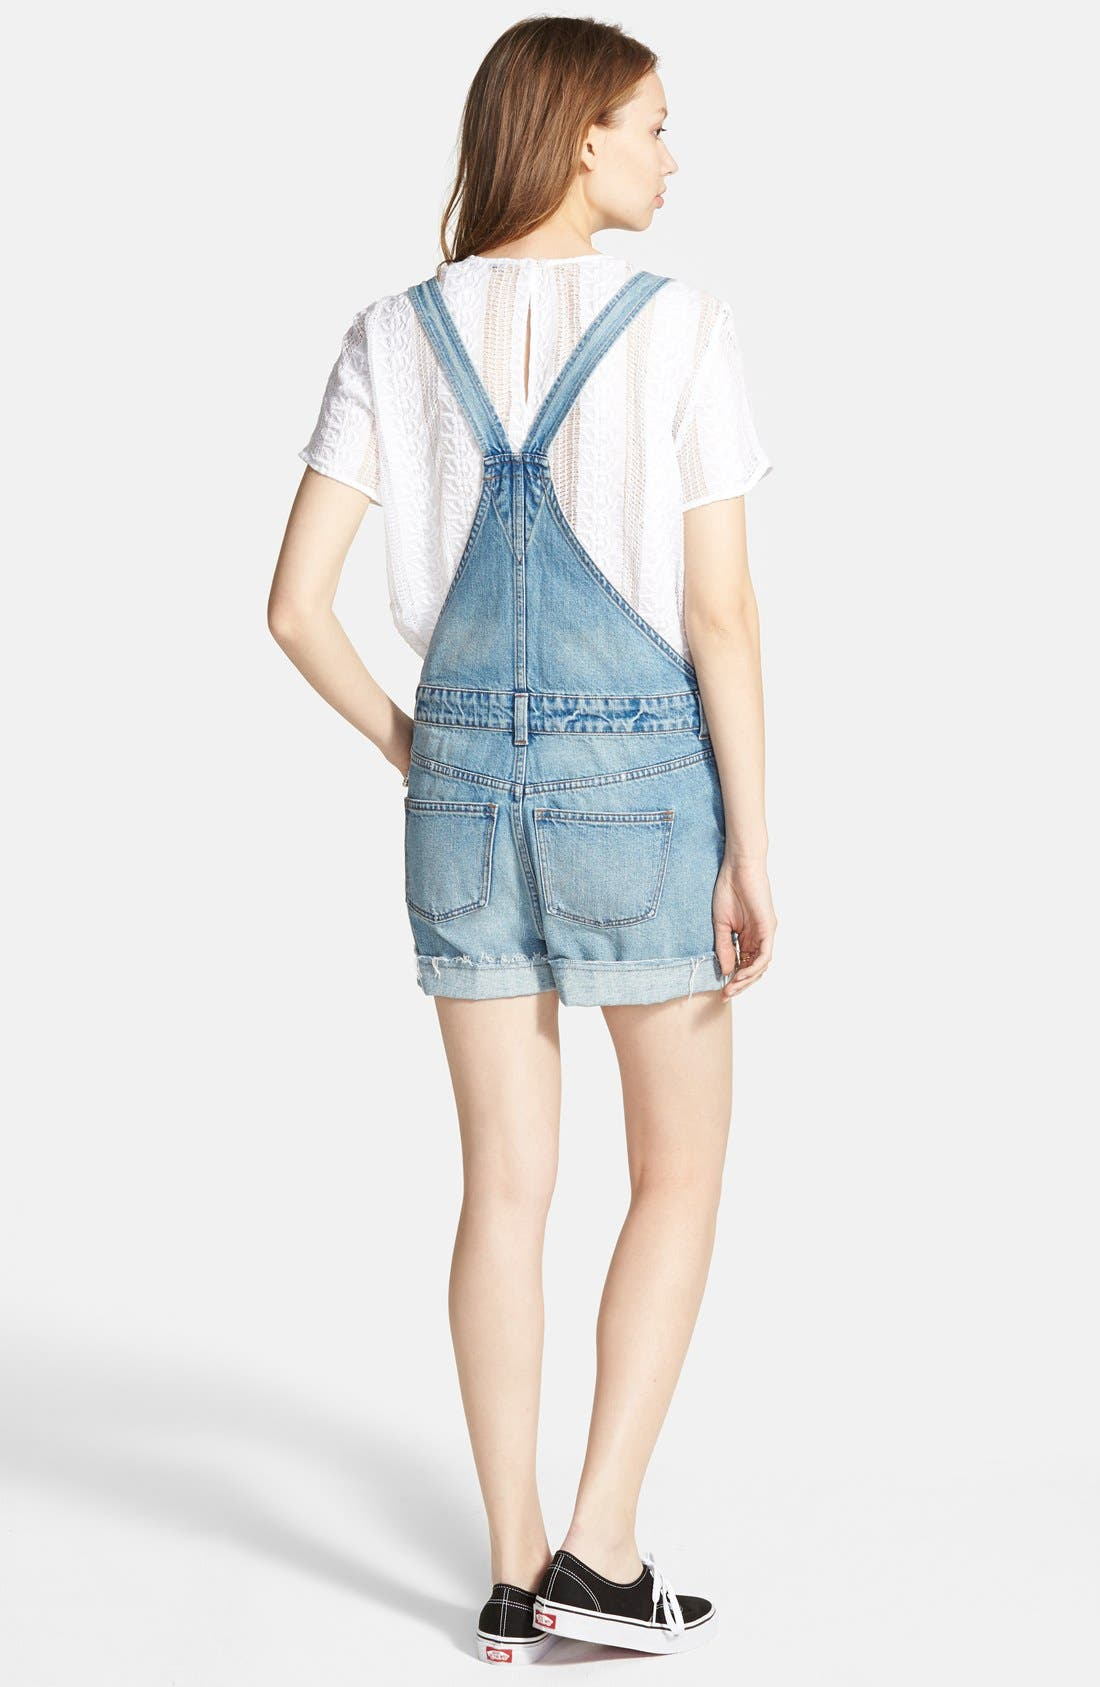 MADEWELL,                             'Adirondack' Short Overalls,                             Alternate thumbnail 3, color,                             400